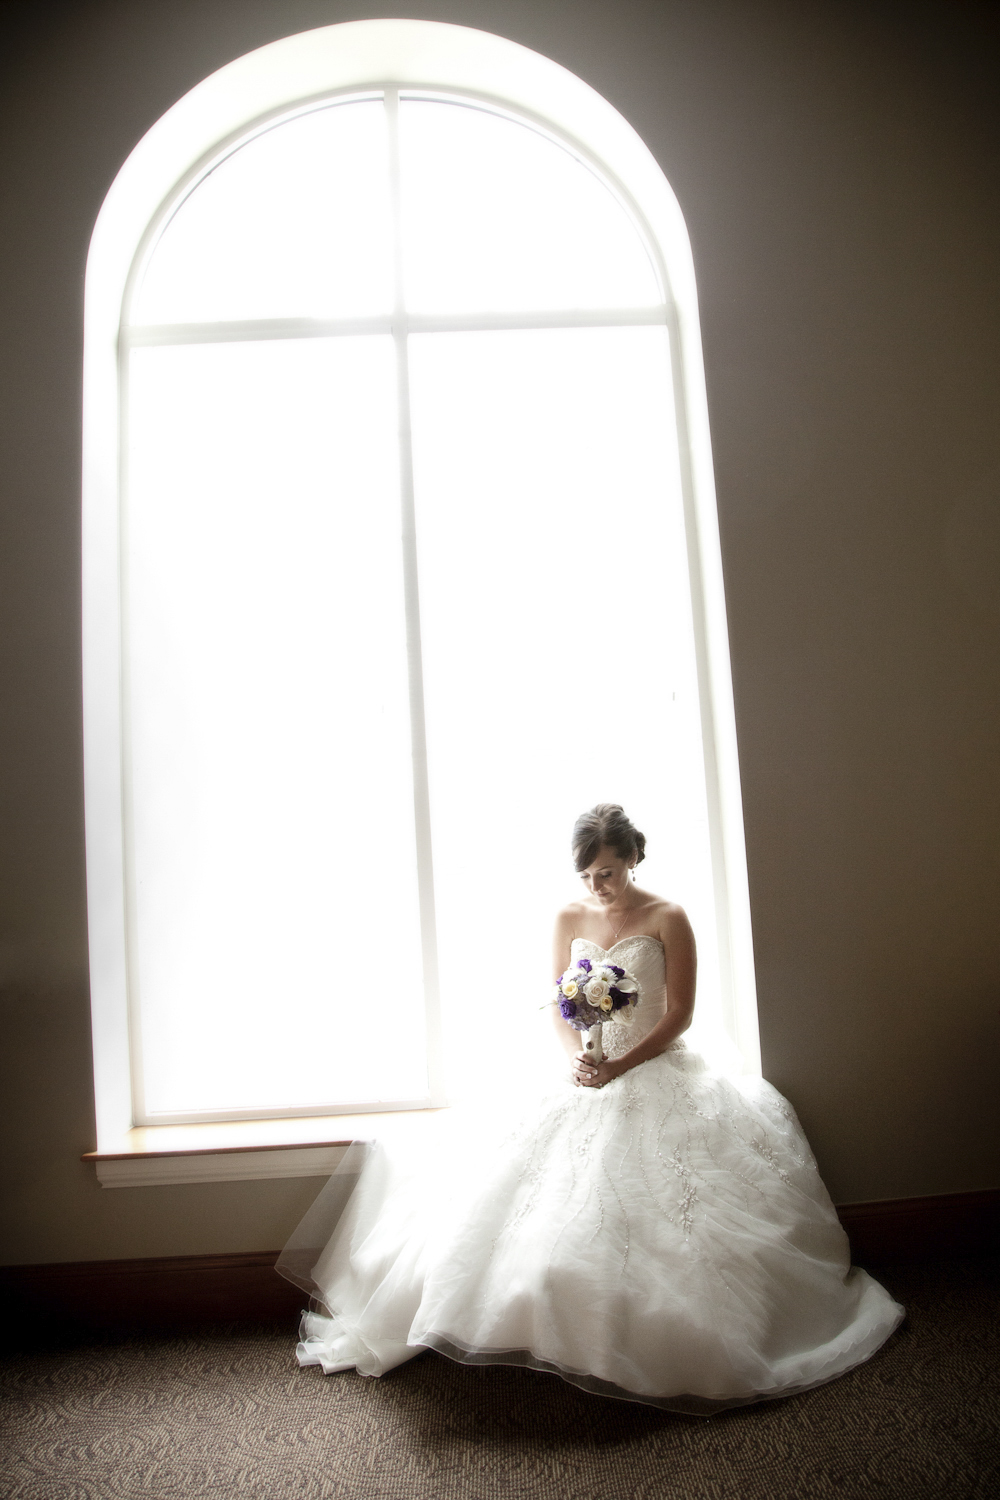 Indianapolis-Indiana-Wedding-Photographer-Crowes-Eye-Photography-Bridal-Portrait.jpg